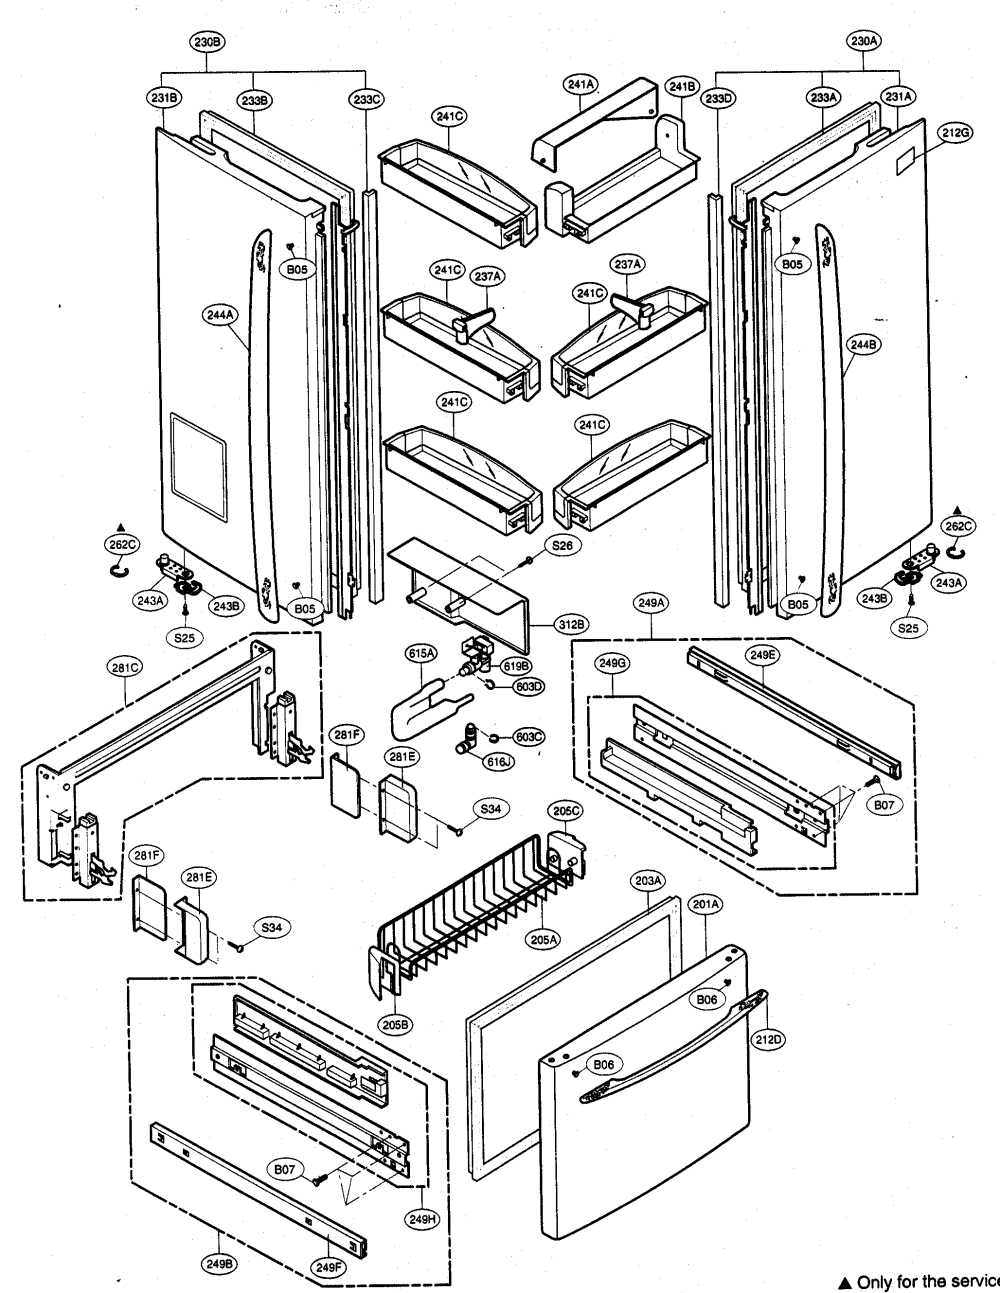 medium resolution of refrigerator parts diagram on kenmore 795 refrigerator parts diagram kenmore refrigerator wiring diagram model 795 77543600